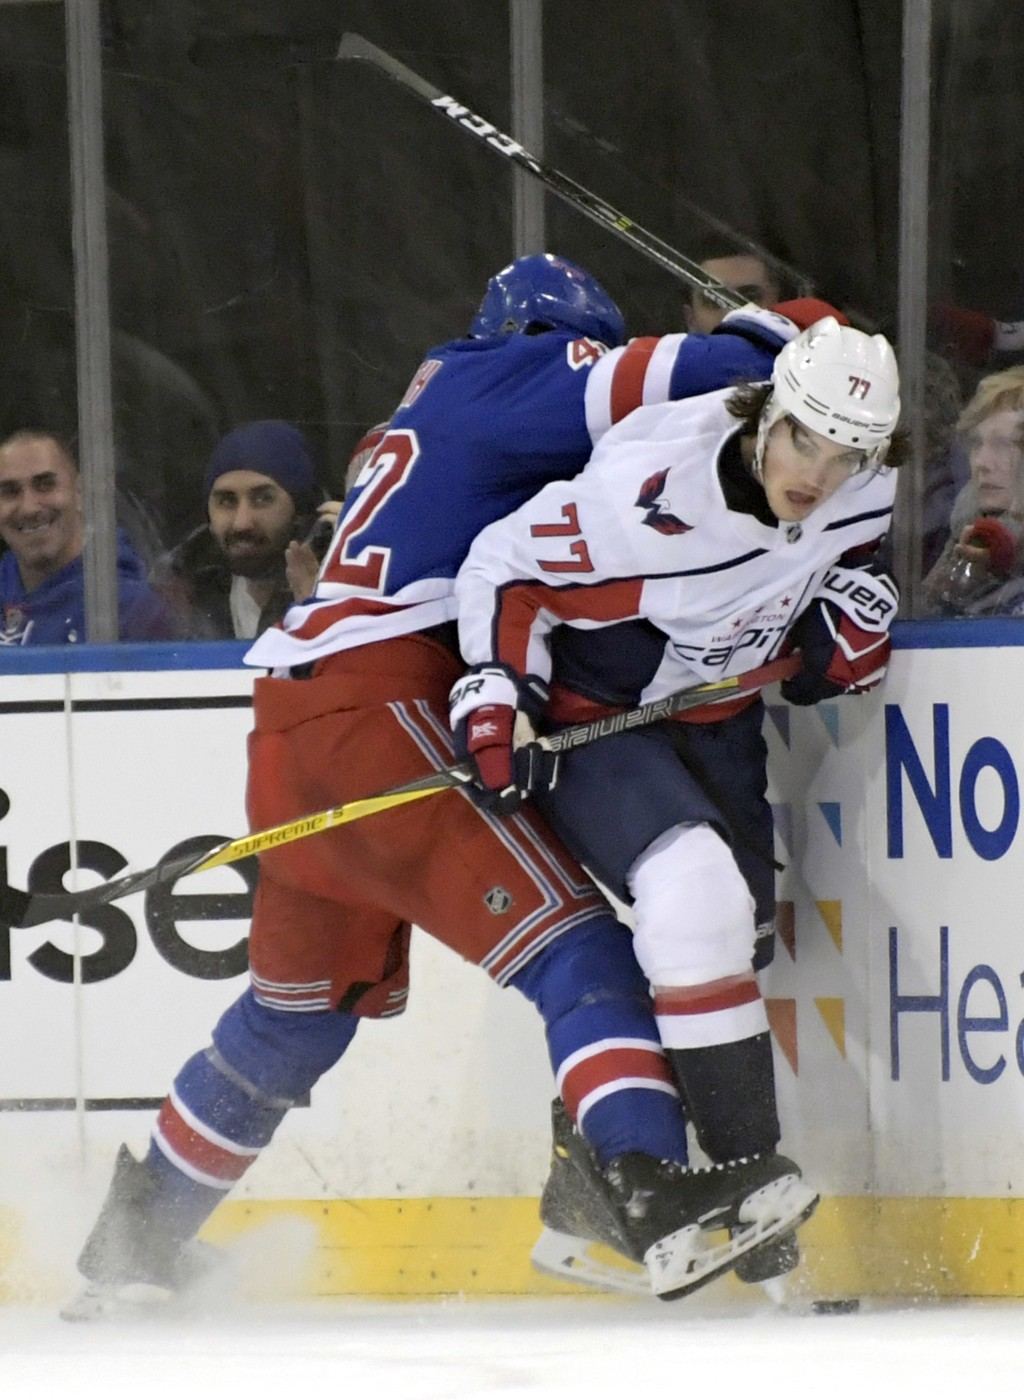 New York Rangers defenseman Brendan Smith (42) checks Washington Capitals right wing T.J. Oshie (77) during the second period of an NHL hockey game, W...